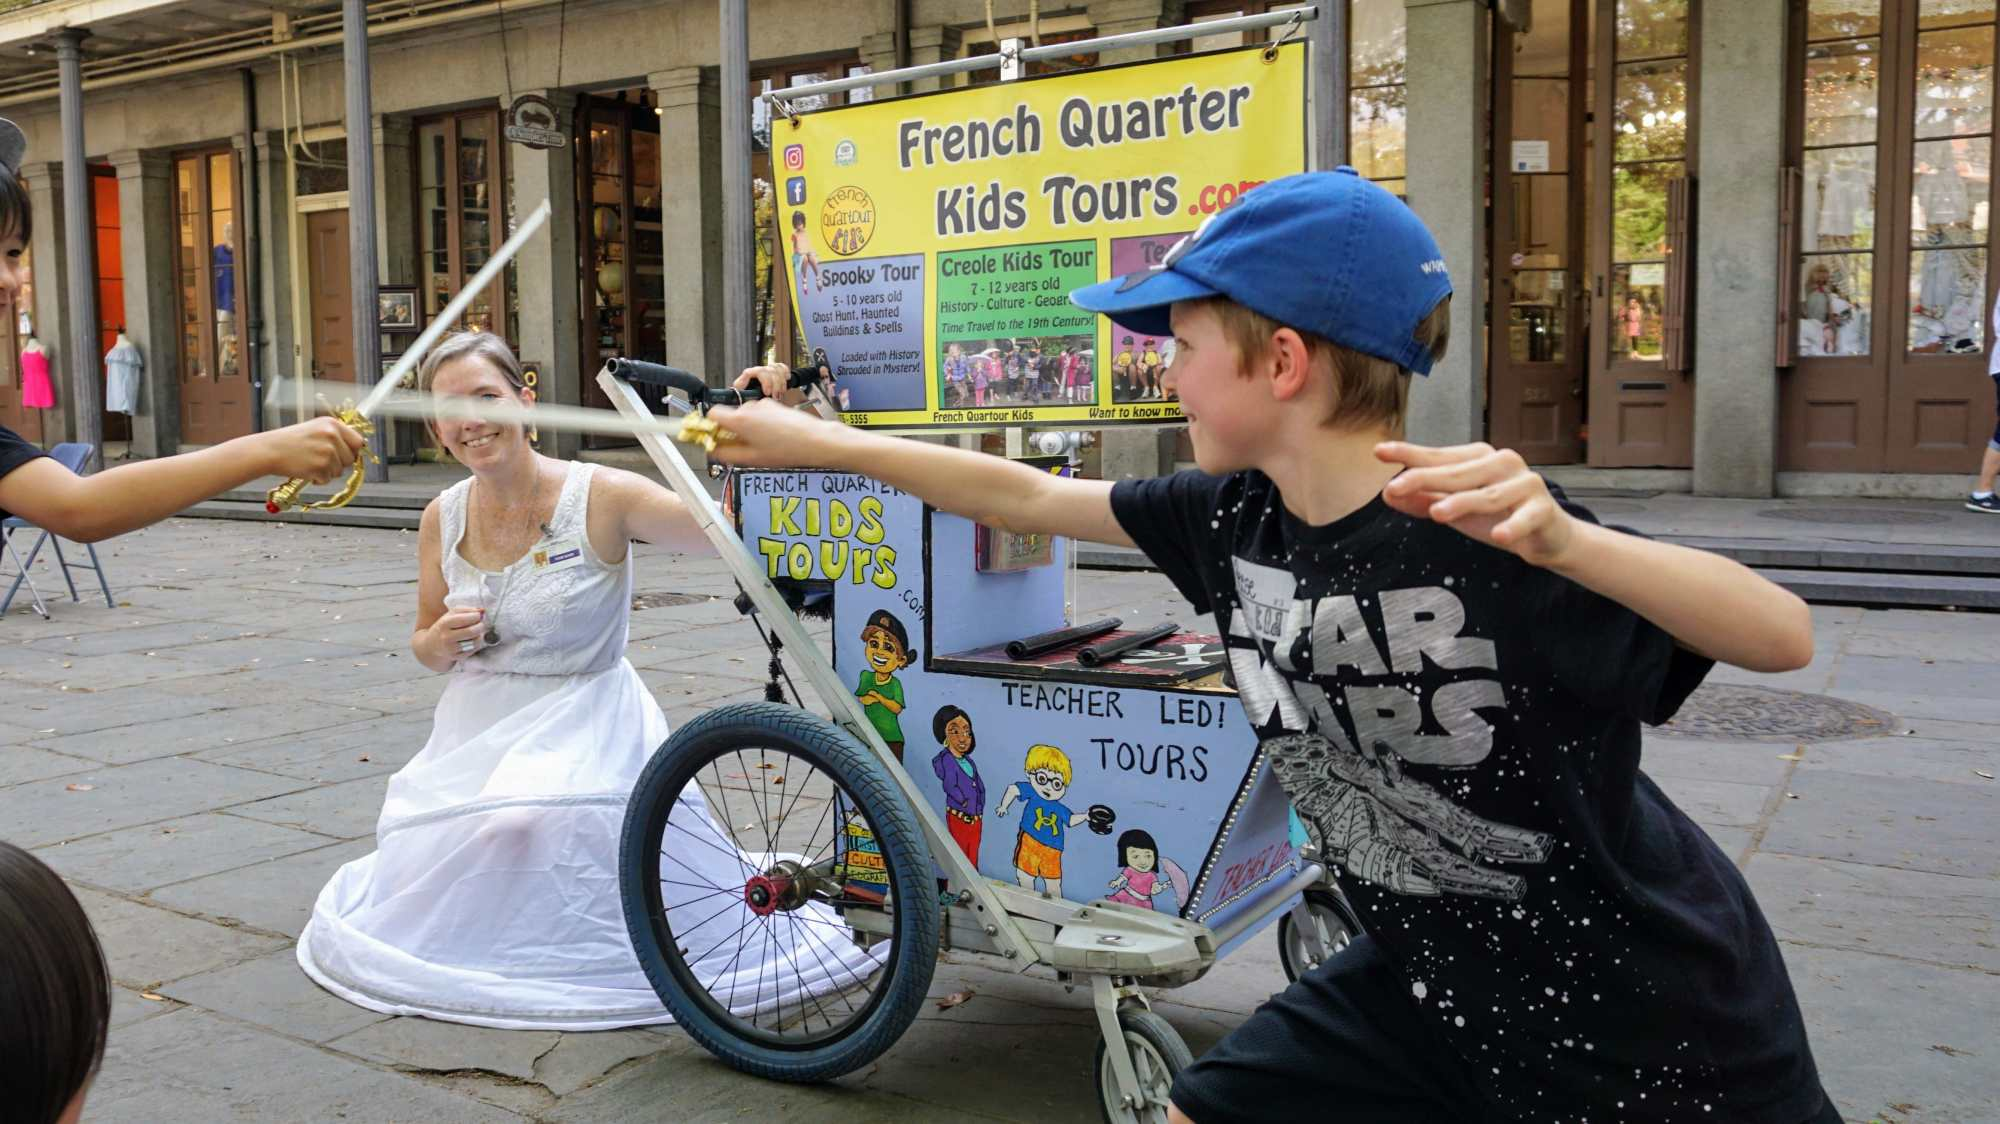 Things to do in New Orleans: 26 kid-friendly attractions - Curbed